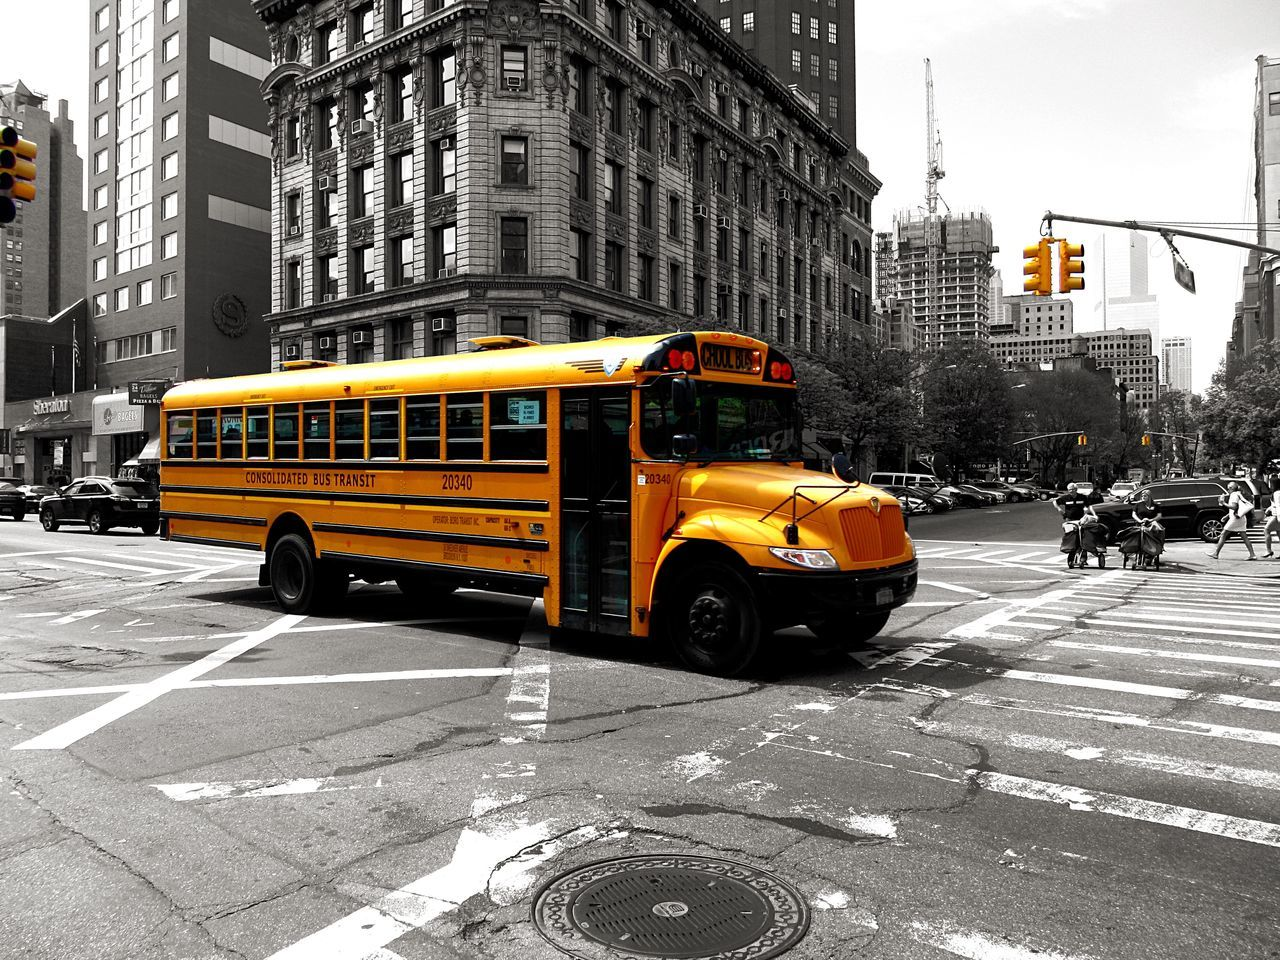 School Bus Yellow Bus  Bus Ride Colorkey NYC Photography New York Manhatten Yellow Street Photography EyeEm Crossroads From My Point Of View Eye4photography  Lights What The Bus? TakeoverContrast